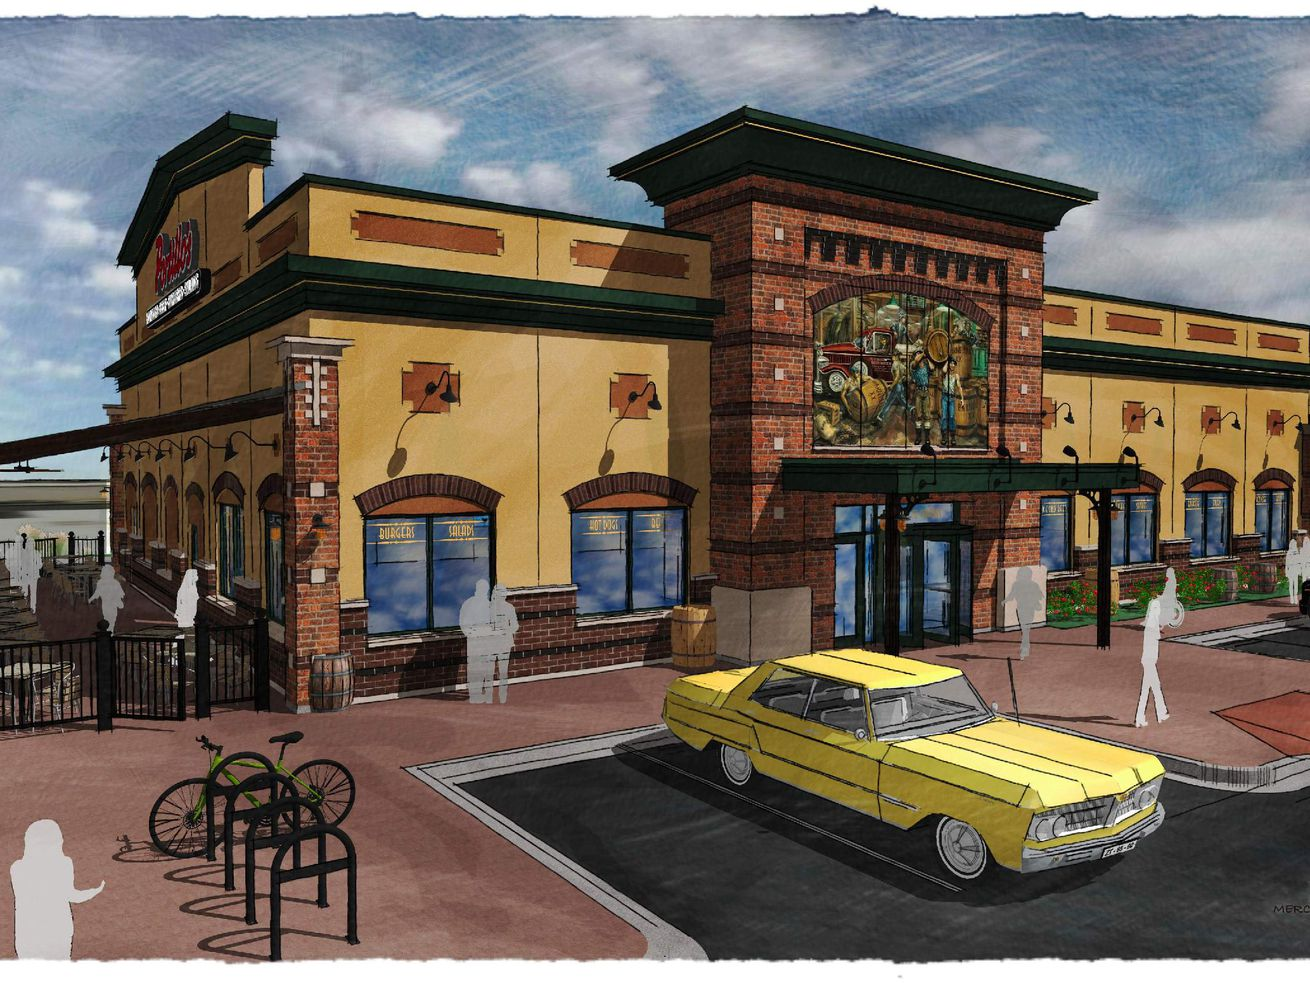 A rendering of the new Portillo's at Addison and Kimball